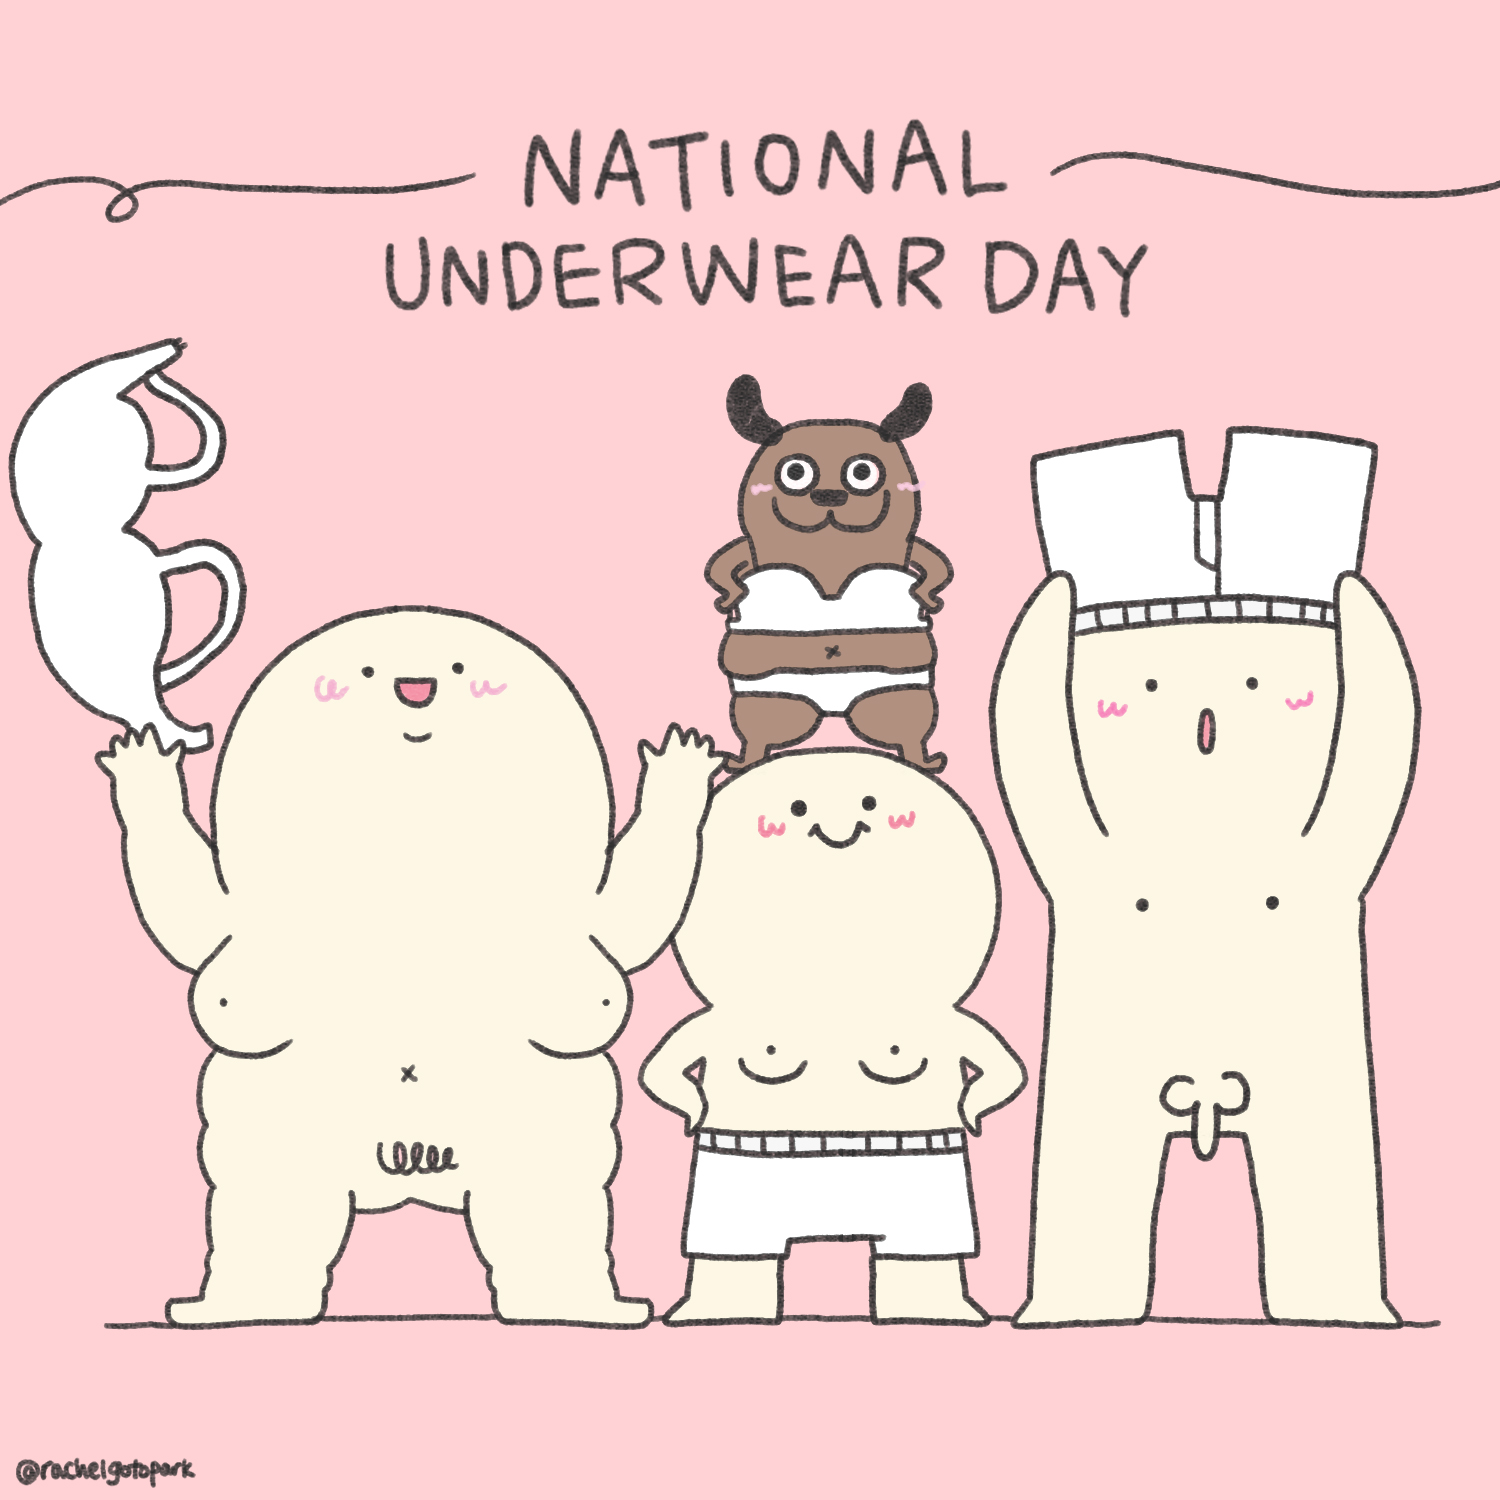 national_underwearday.jpg